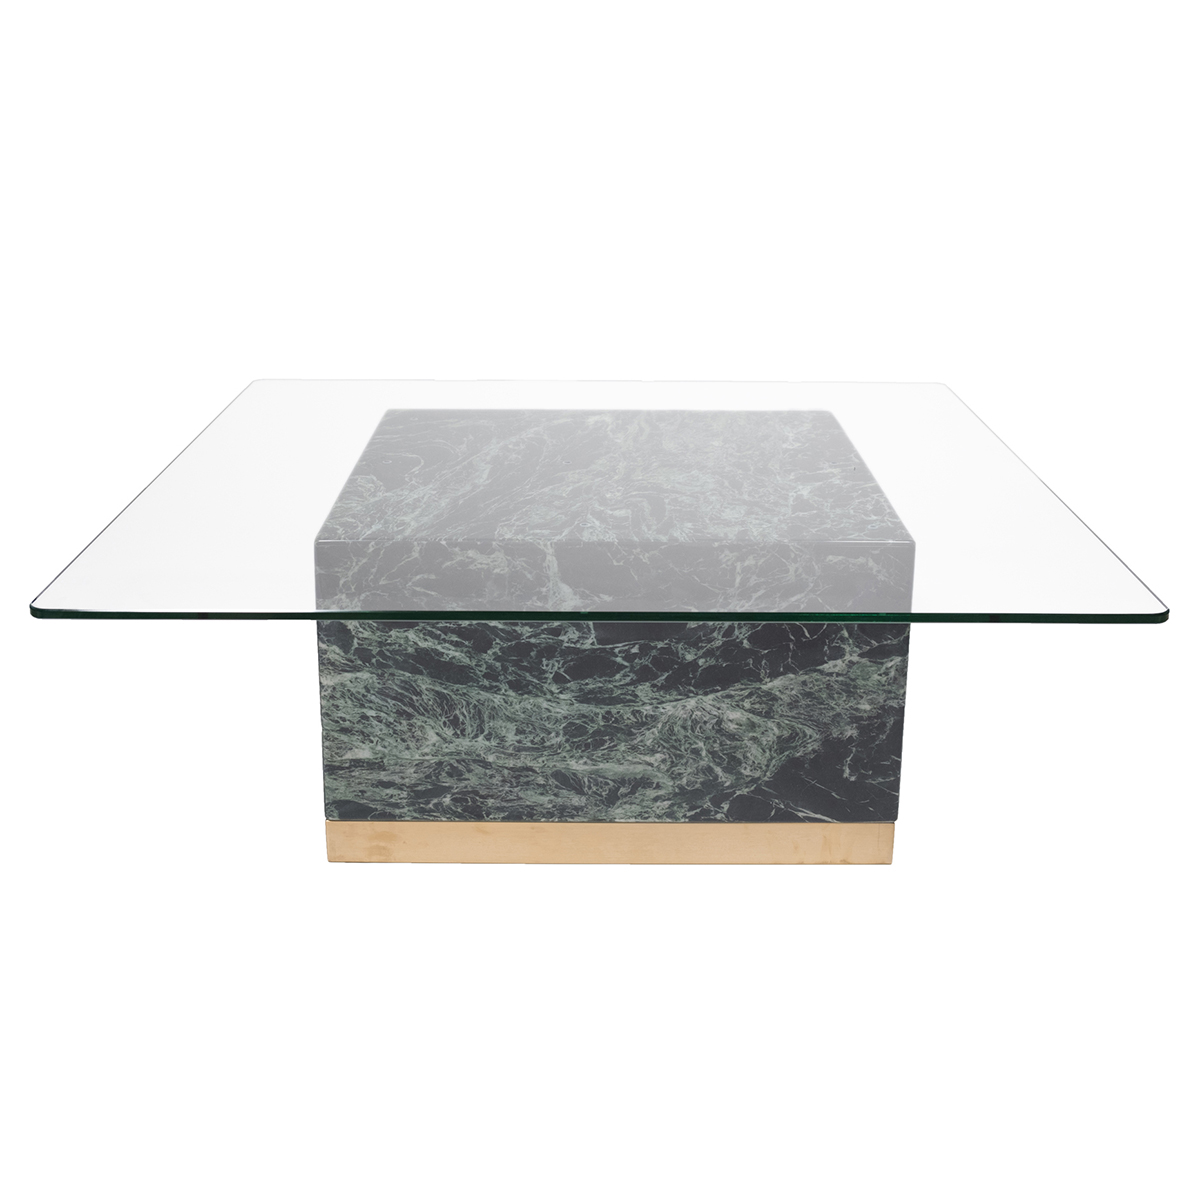 Quebec Coffee Table – Grön Marmor